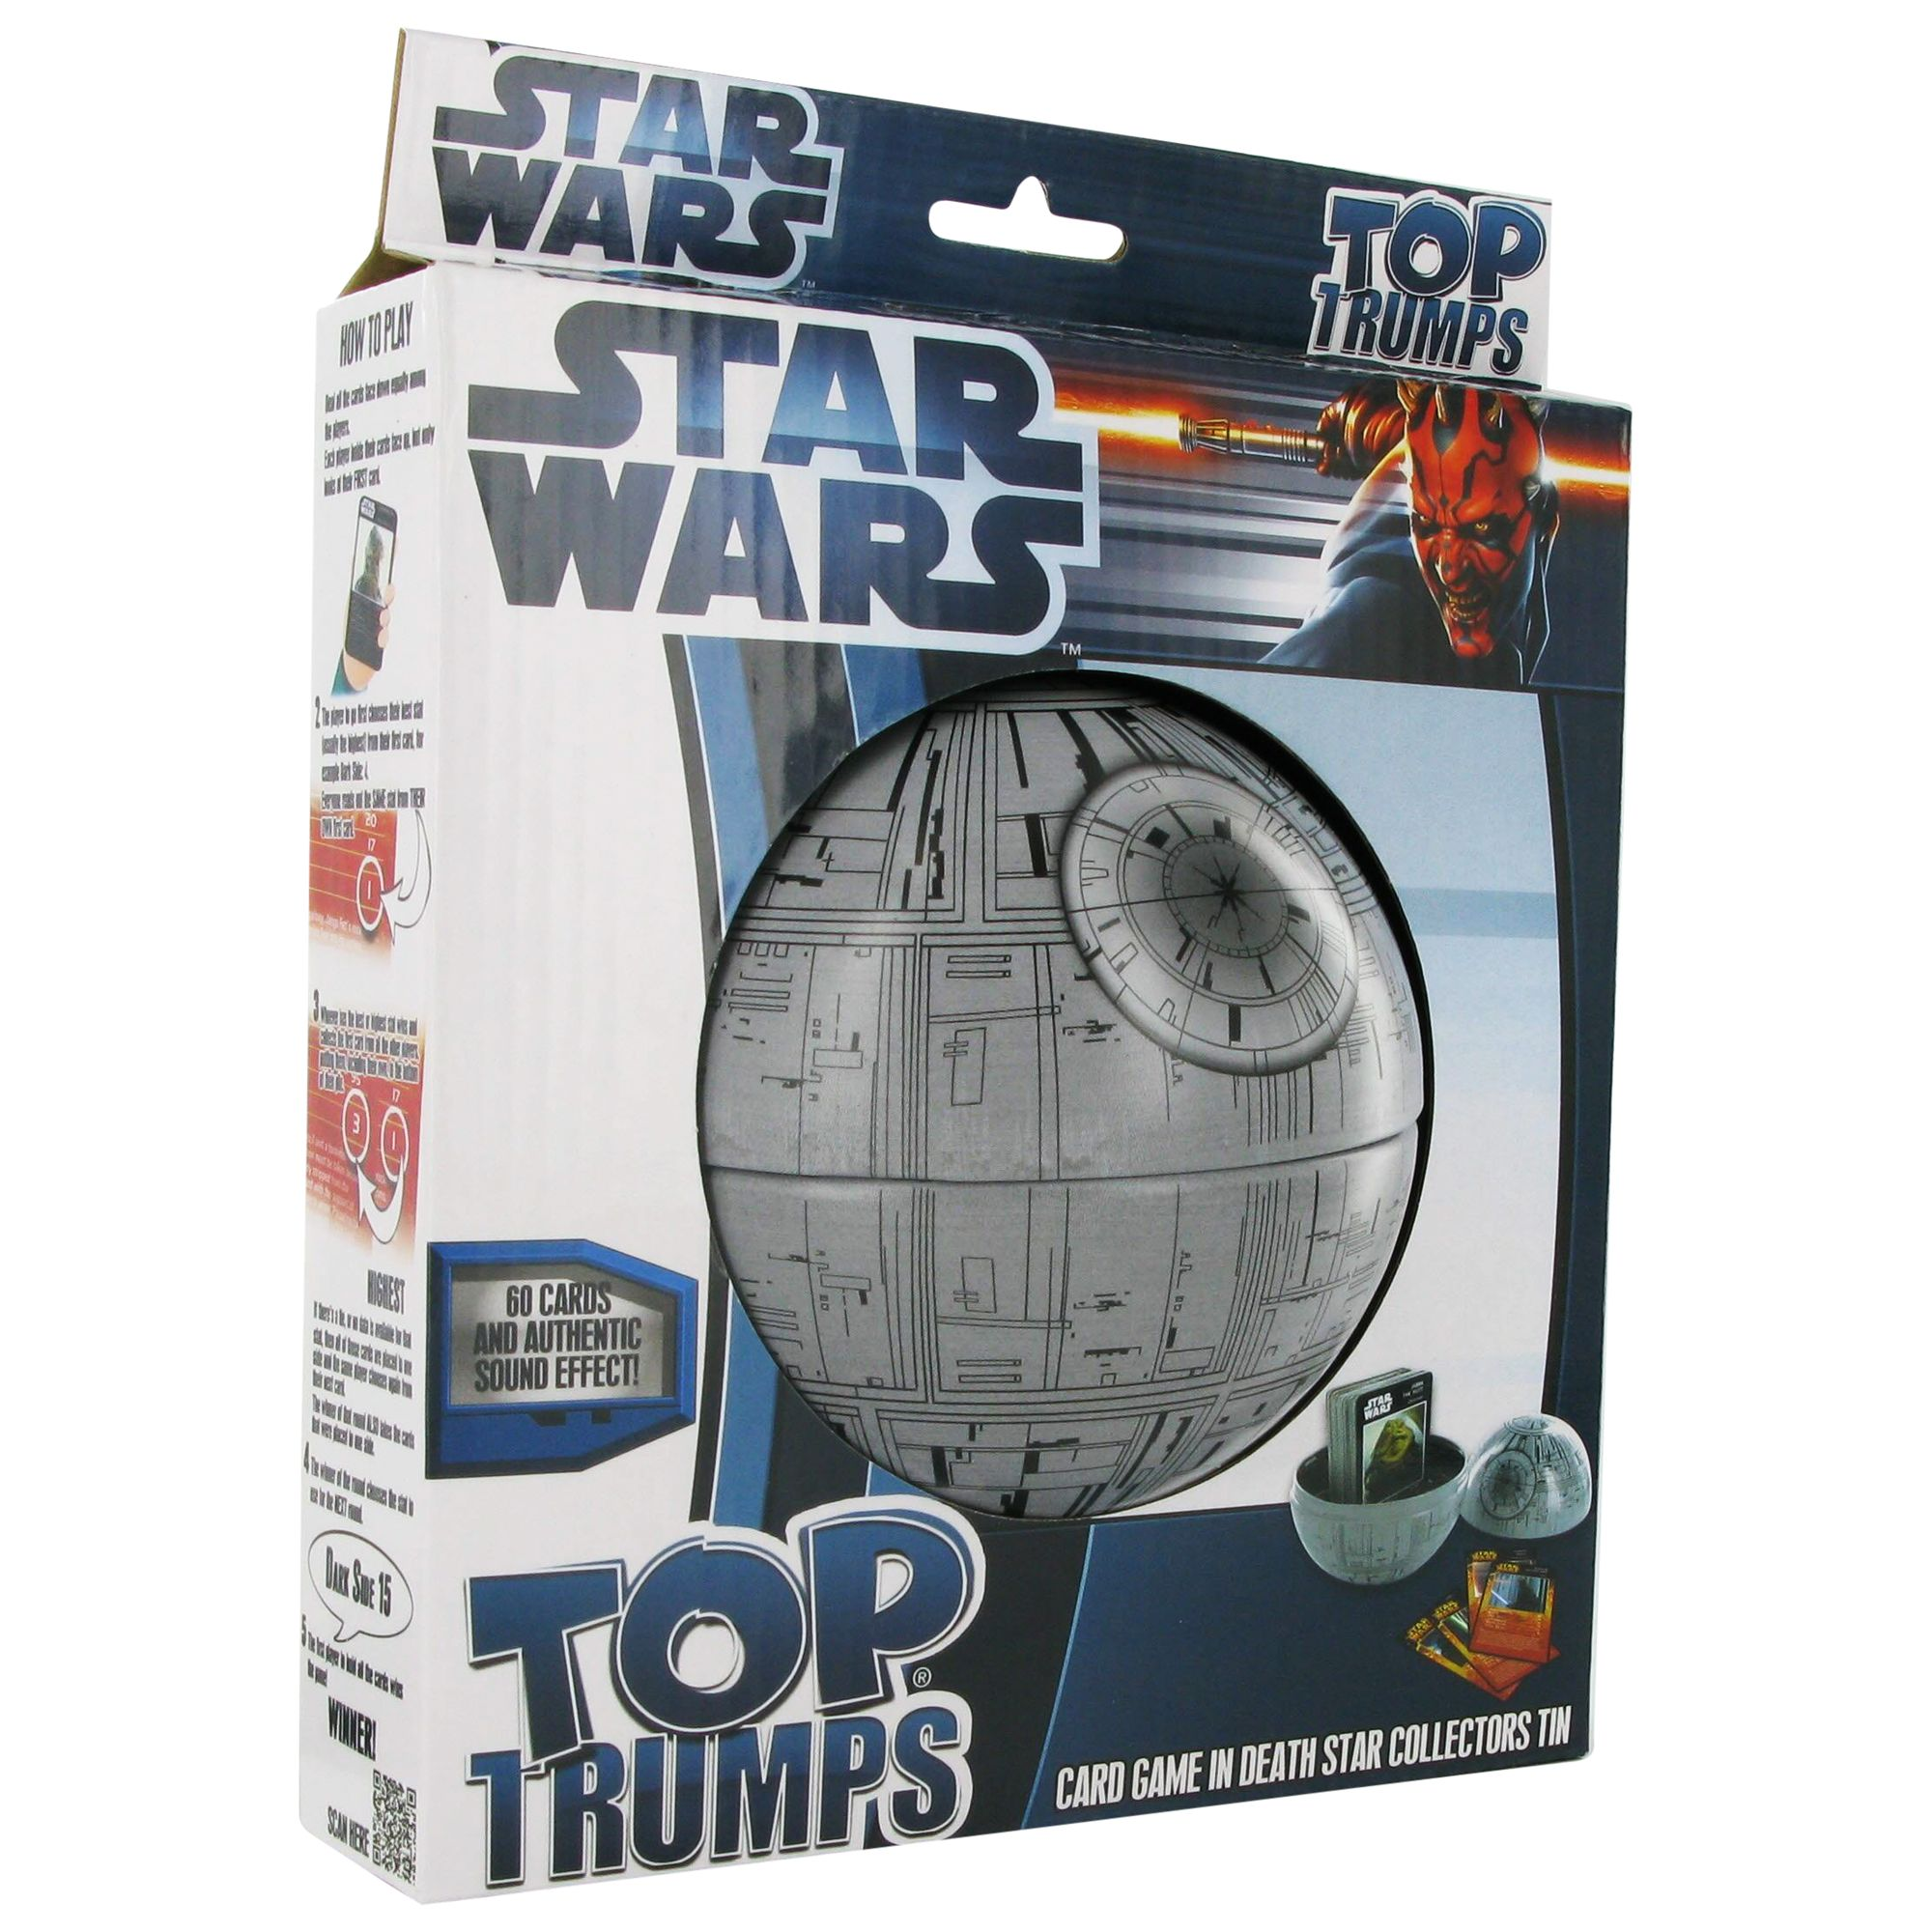 Top Trumps Collectors Tin, Star Wars Death Star